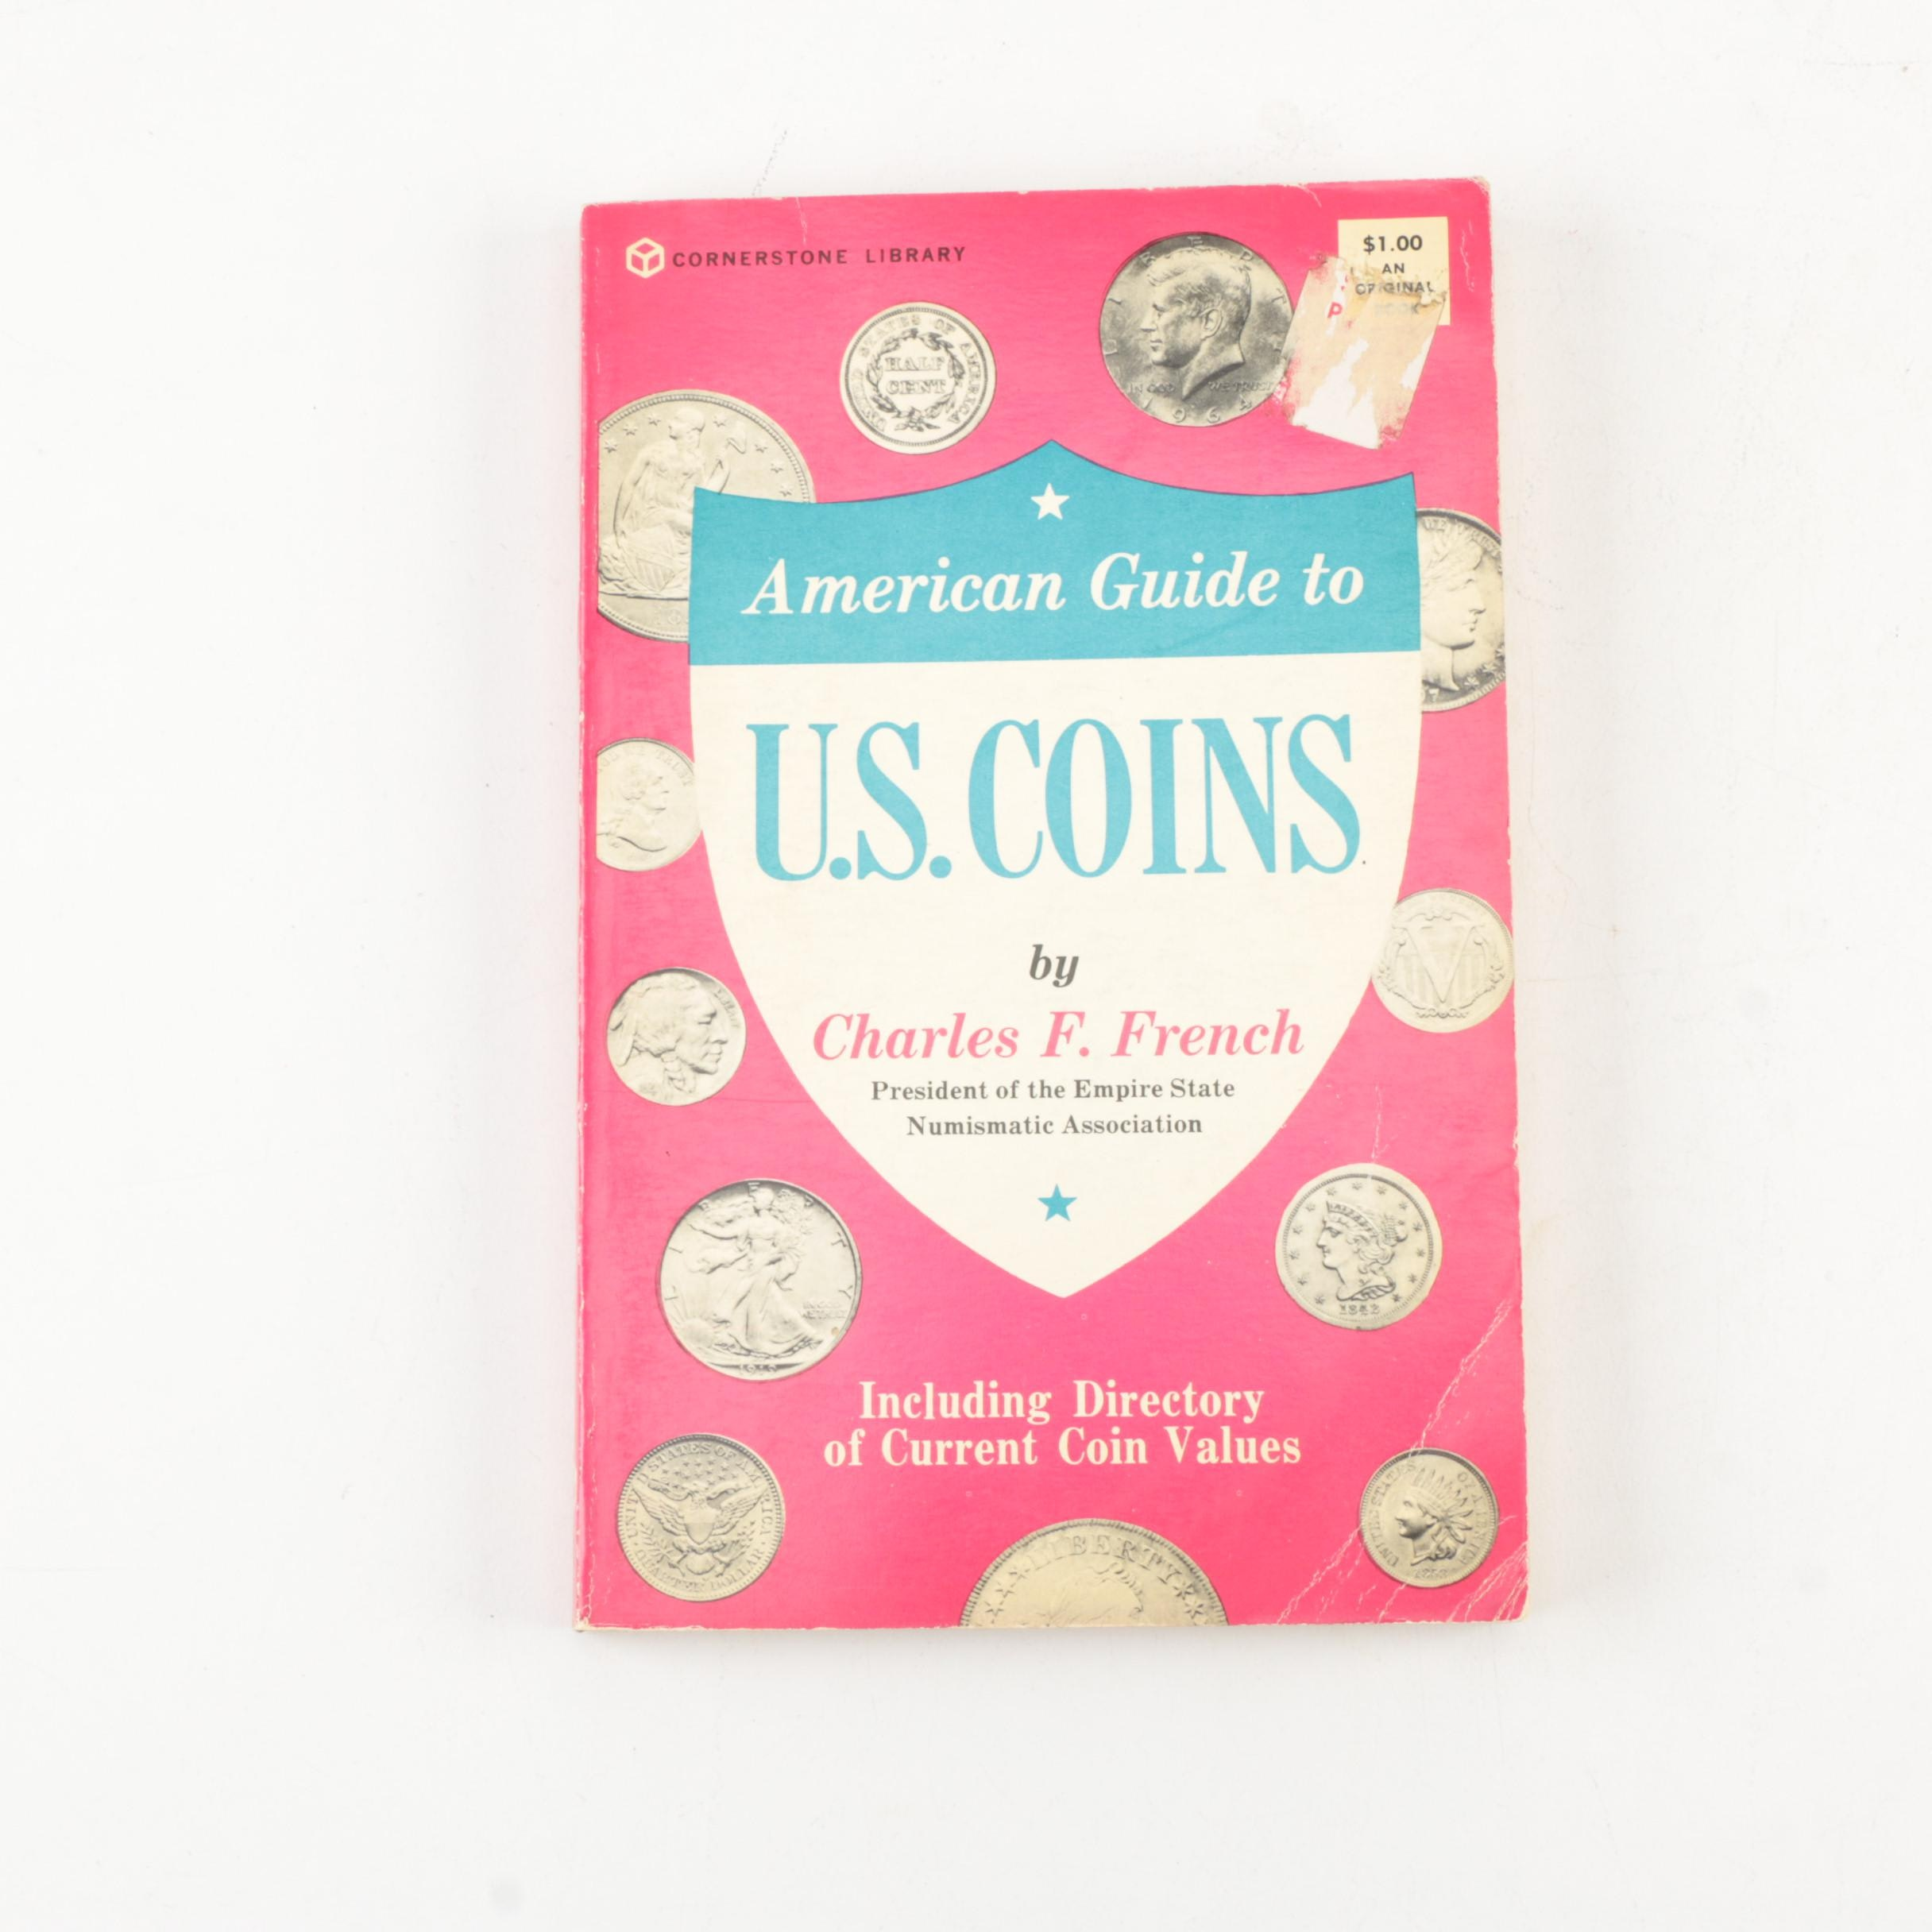 """American Guide to U.S. Coins"" by Charles F. French"